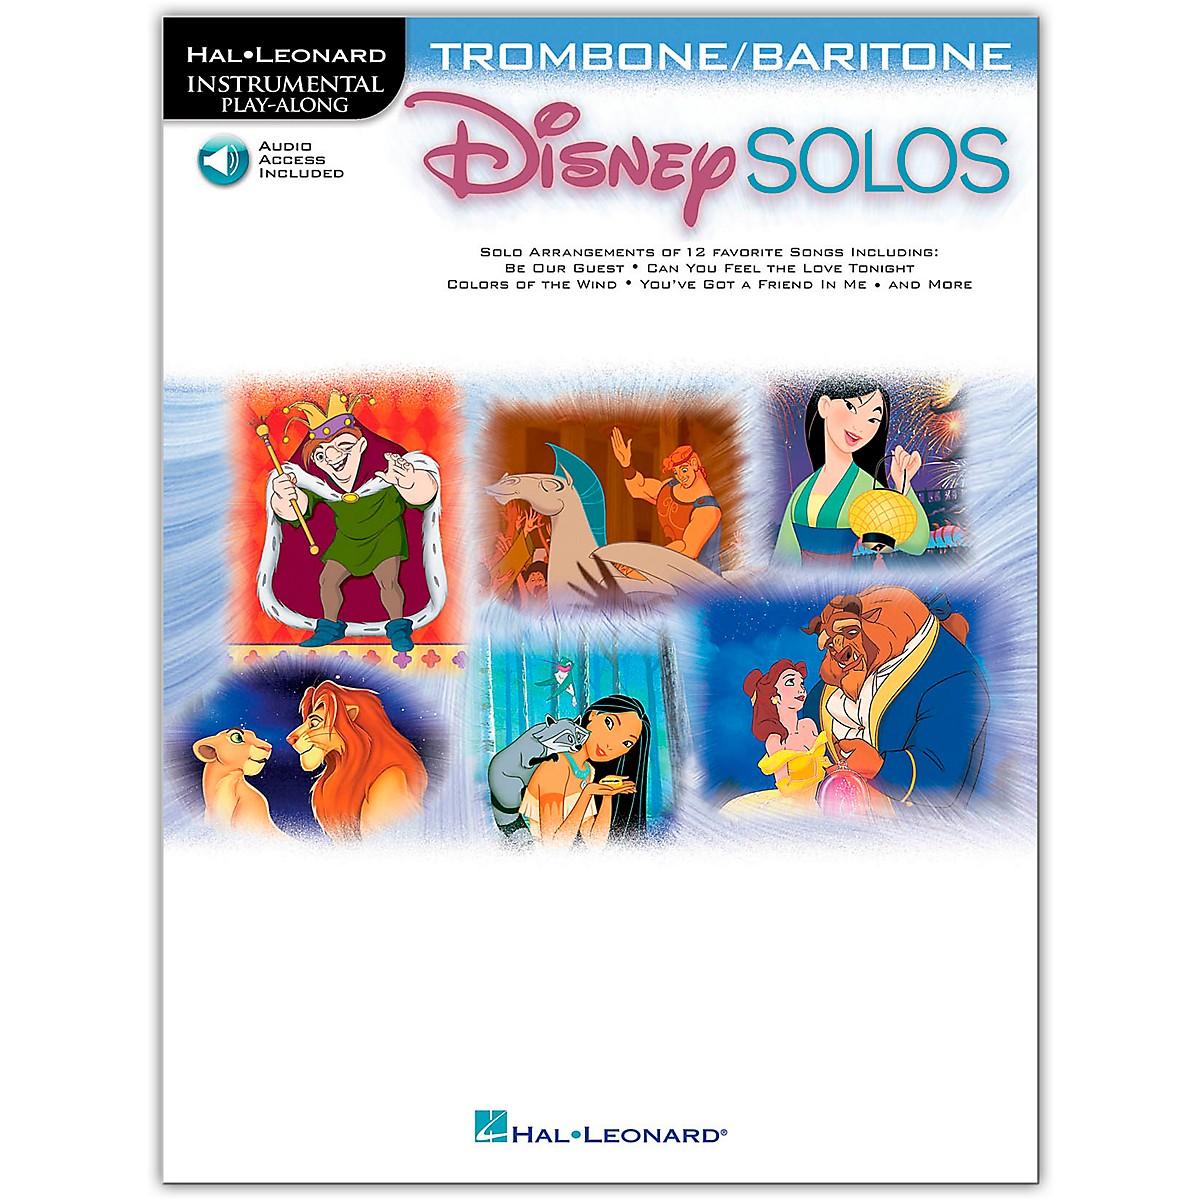 Hal Leonard Play-Along Disney Solos Book with Online Audio Trombone/Baritone